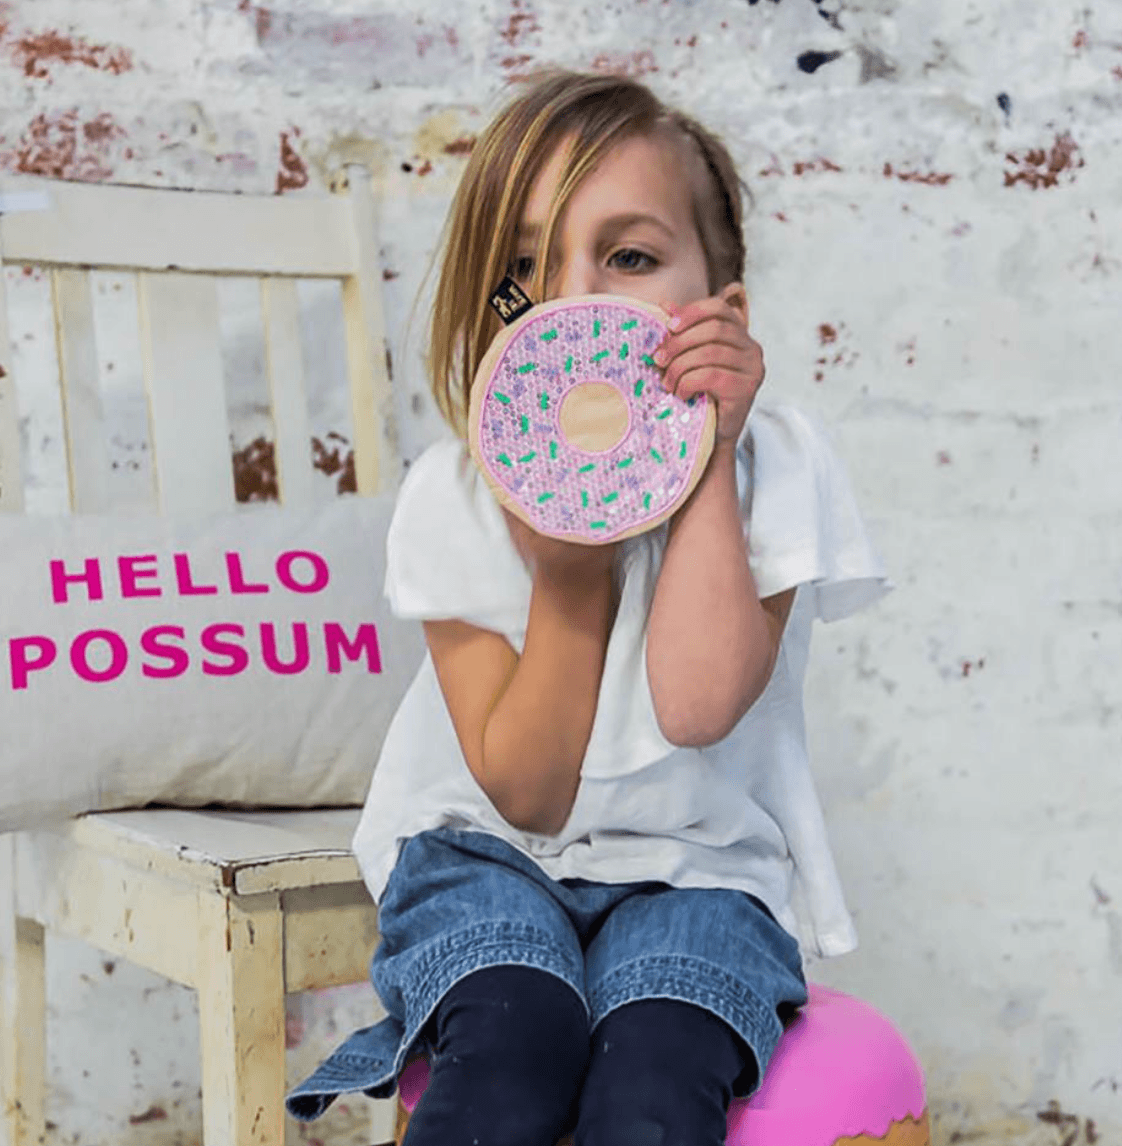 Sequin Purse - Donut - Make me iconic DISCOUNTED